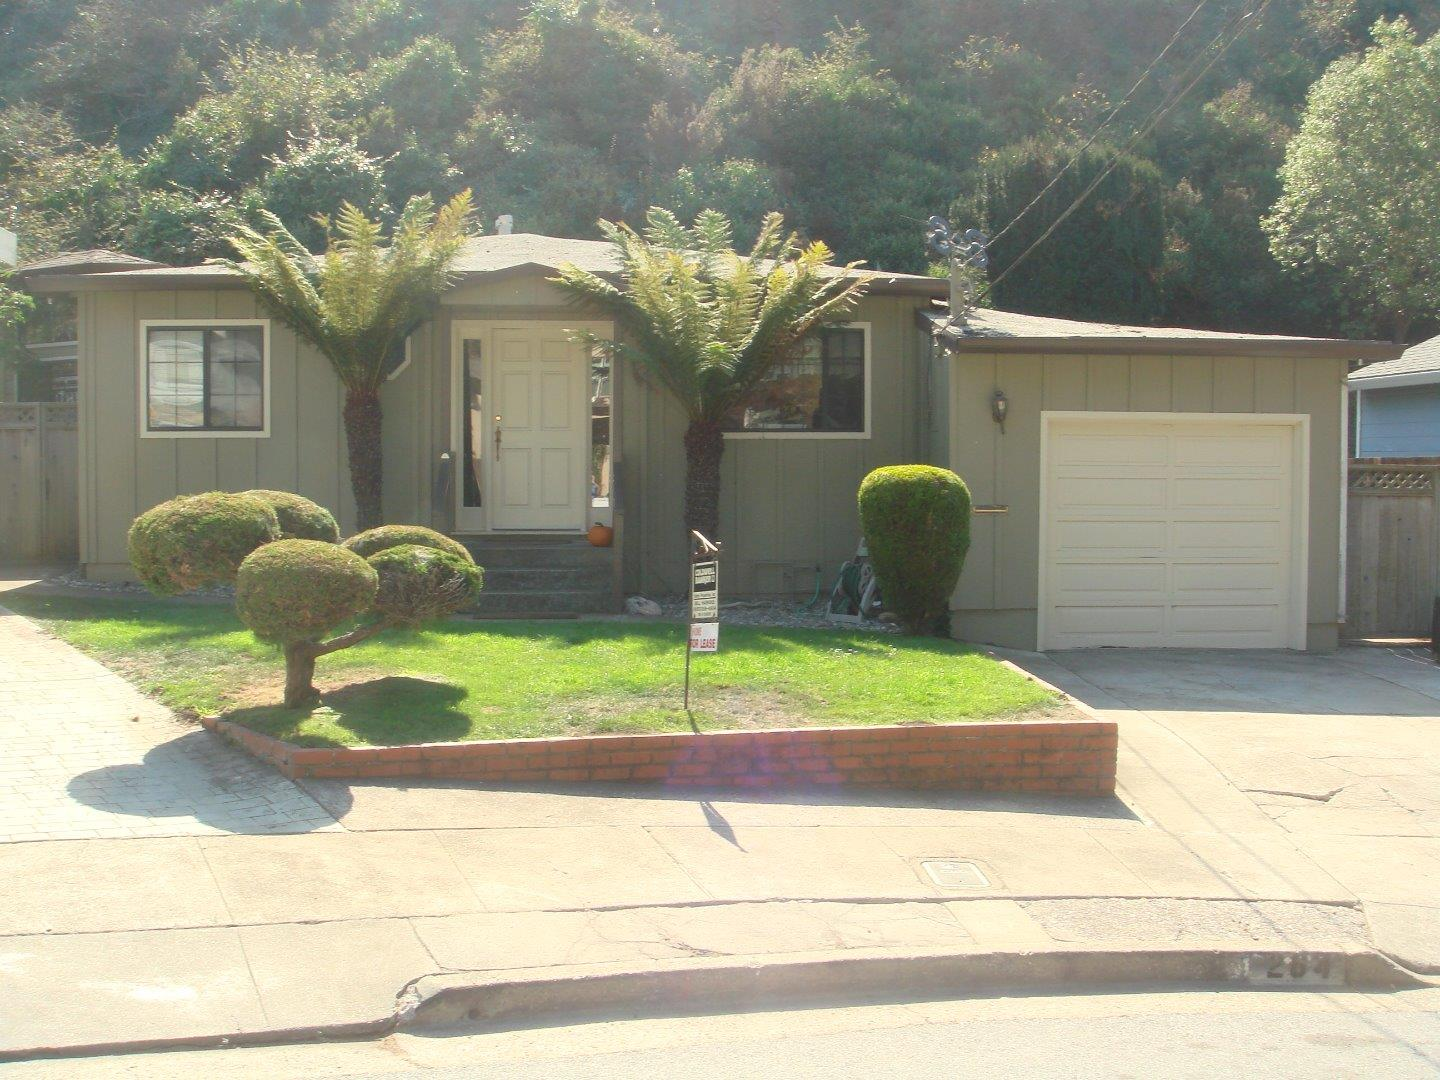 Single Family Home for Rent at 264 Berendos Avenue 264 Berendos Avenue Pacifica, California 94044 United States